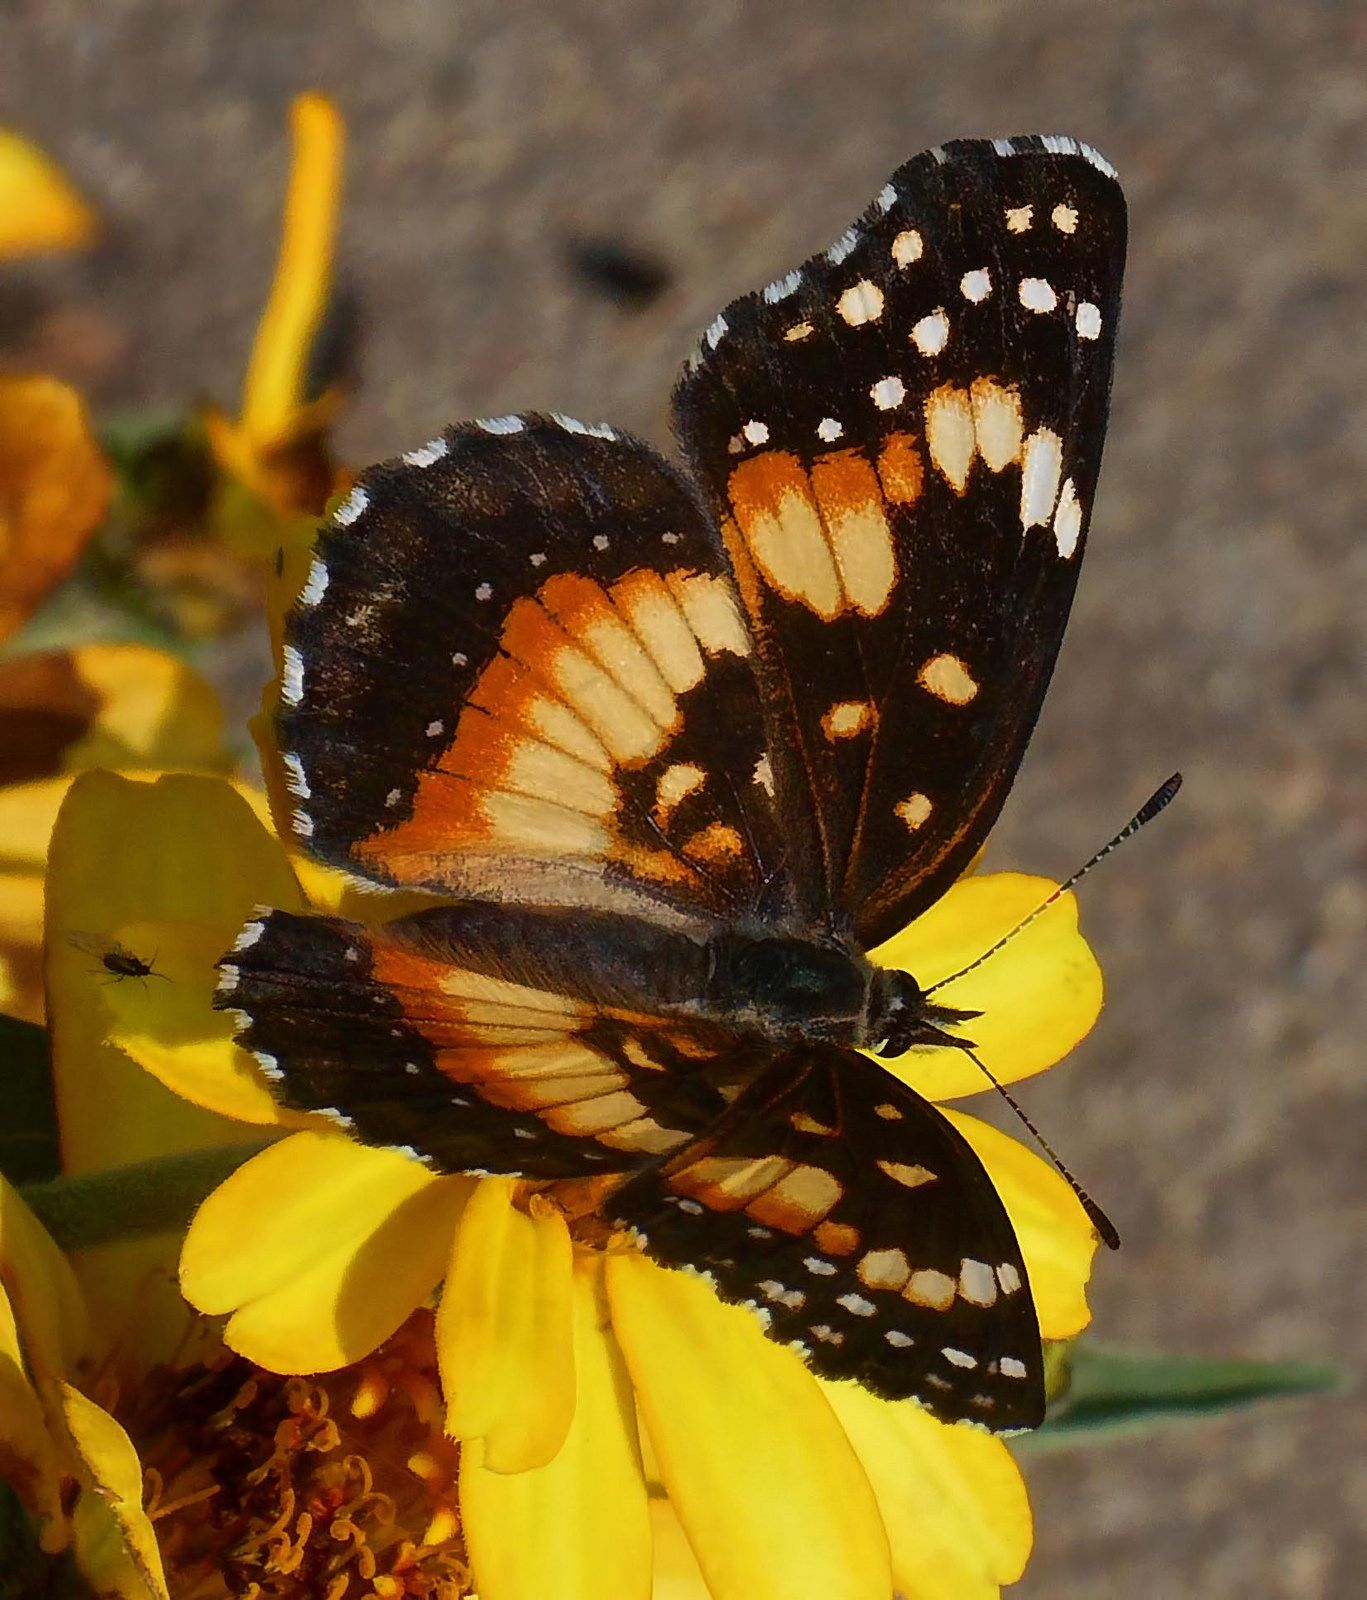 Chlosyne nycteis - Silvery checkerspot